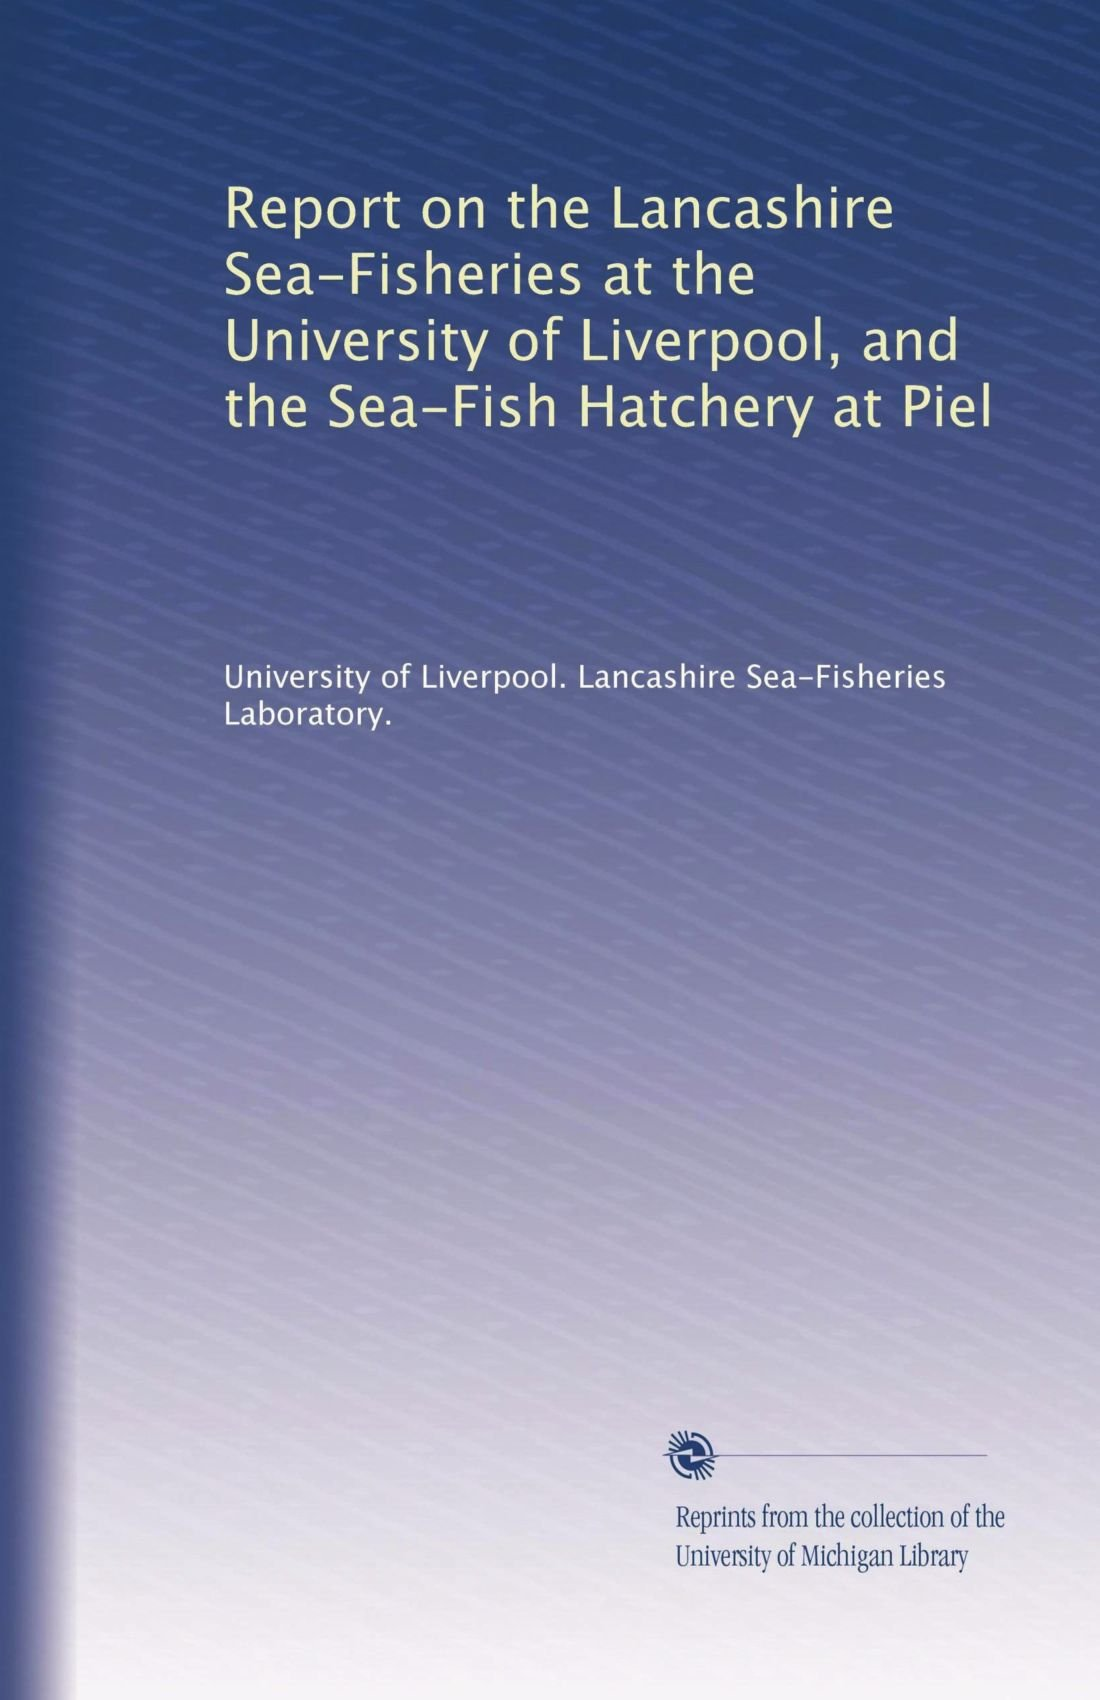 Report on the Lancashire Sea-Fisheries at the University of Liverpool, and the Sea-Fish Hatchery at Piel ebook